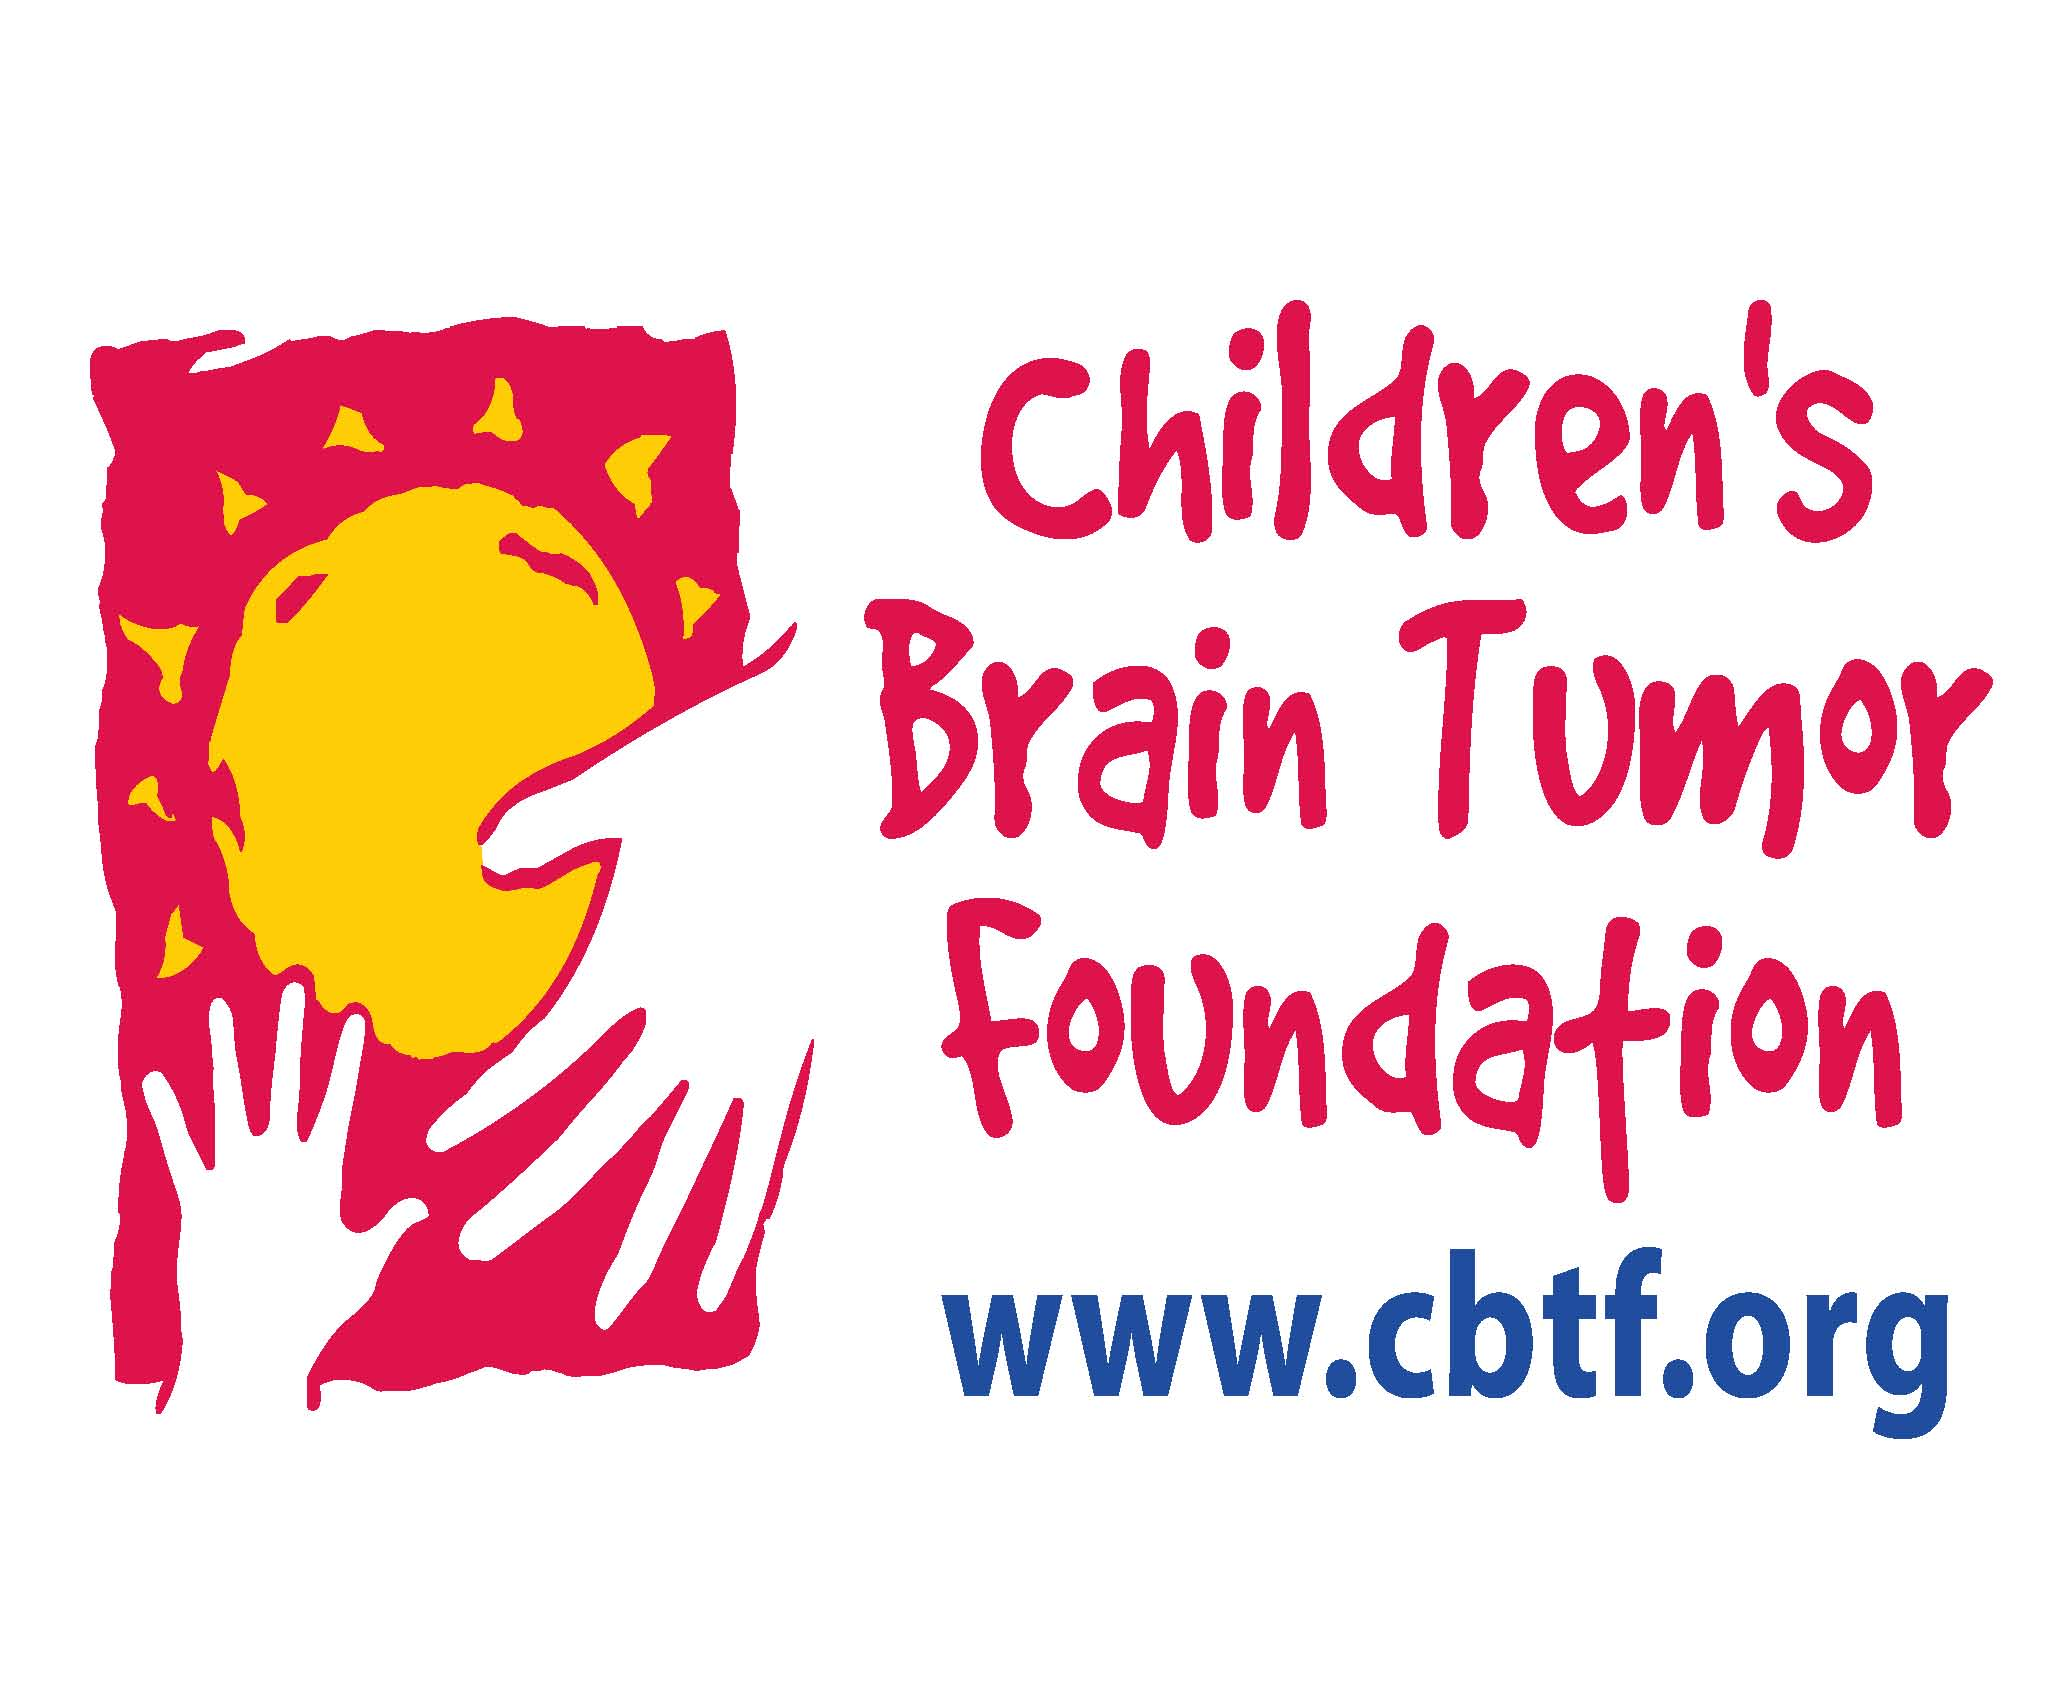 CBTF Programs and Research